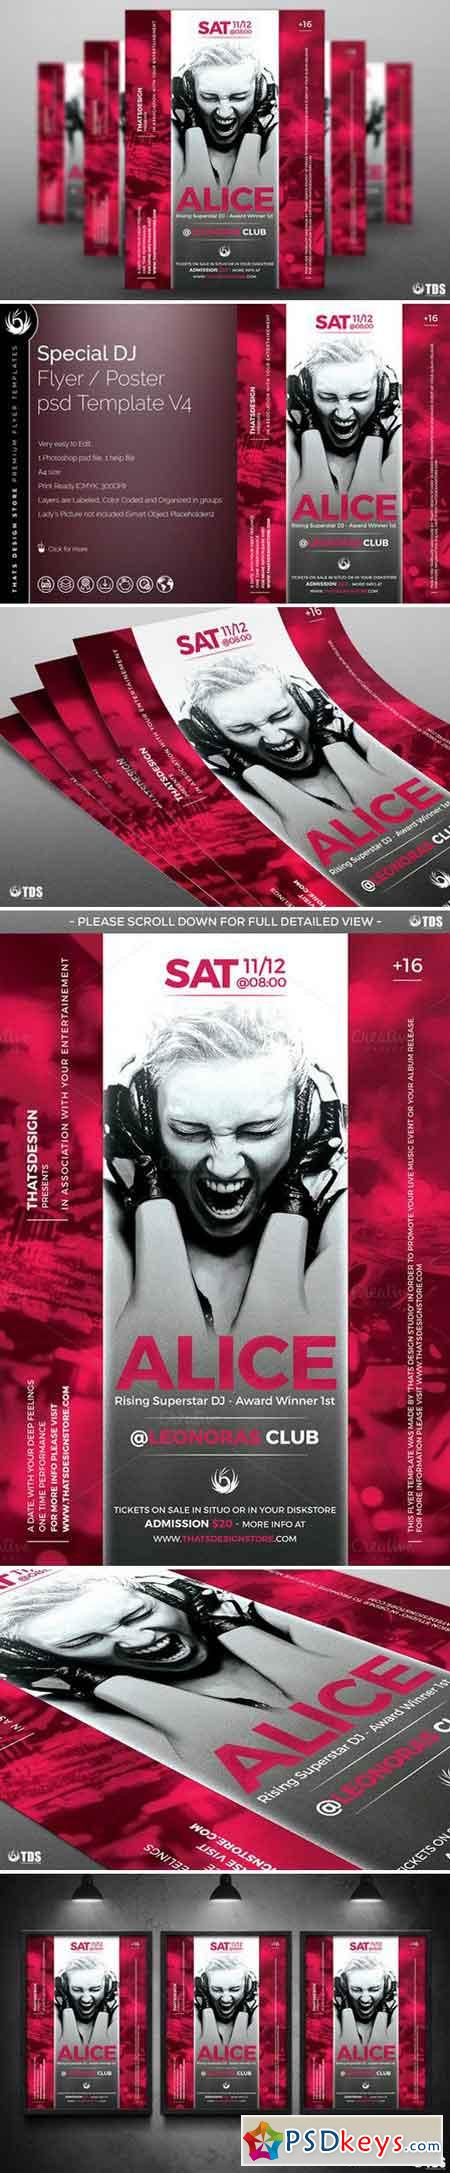 Special Dj Flyer Template V4 732384 » Free Download Photoshop Vector ...